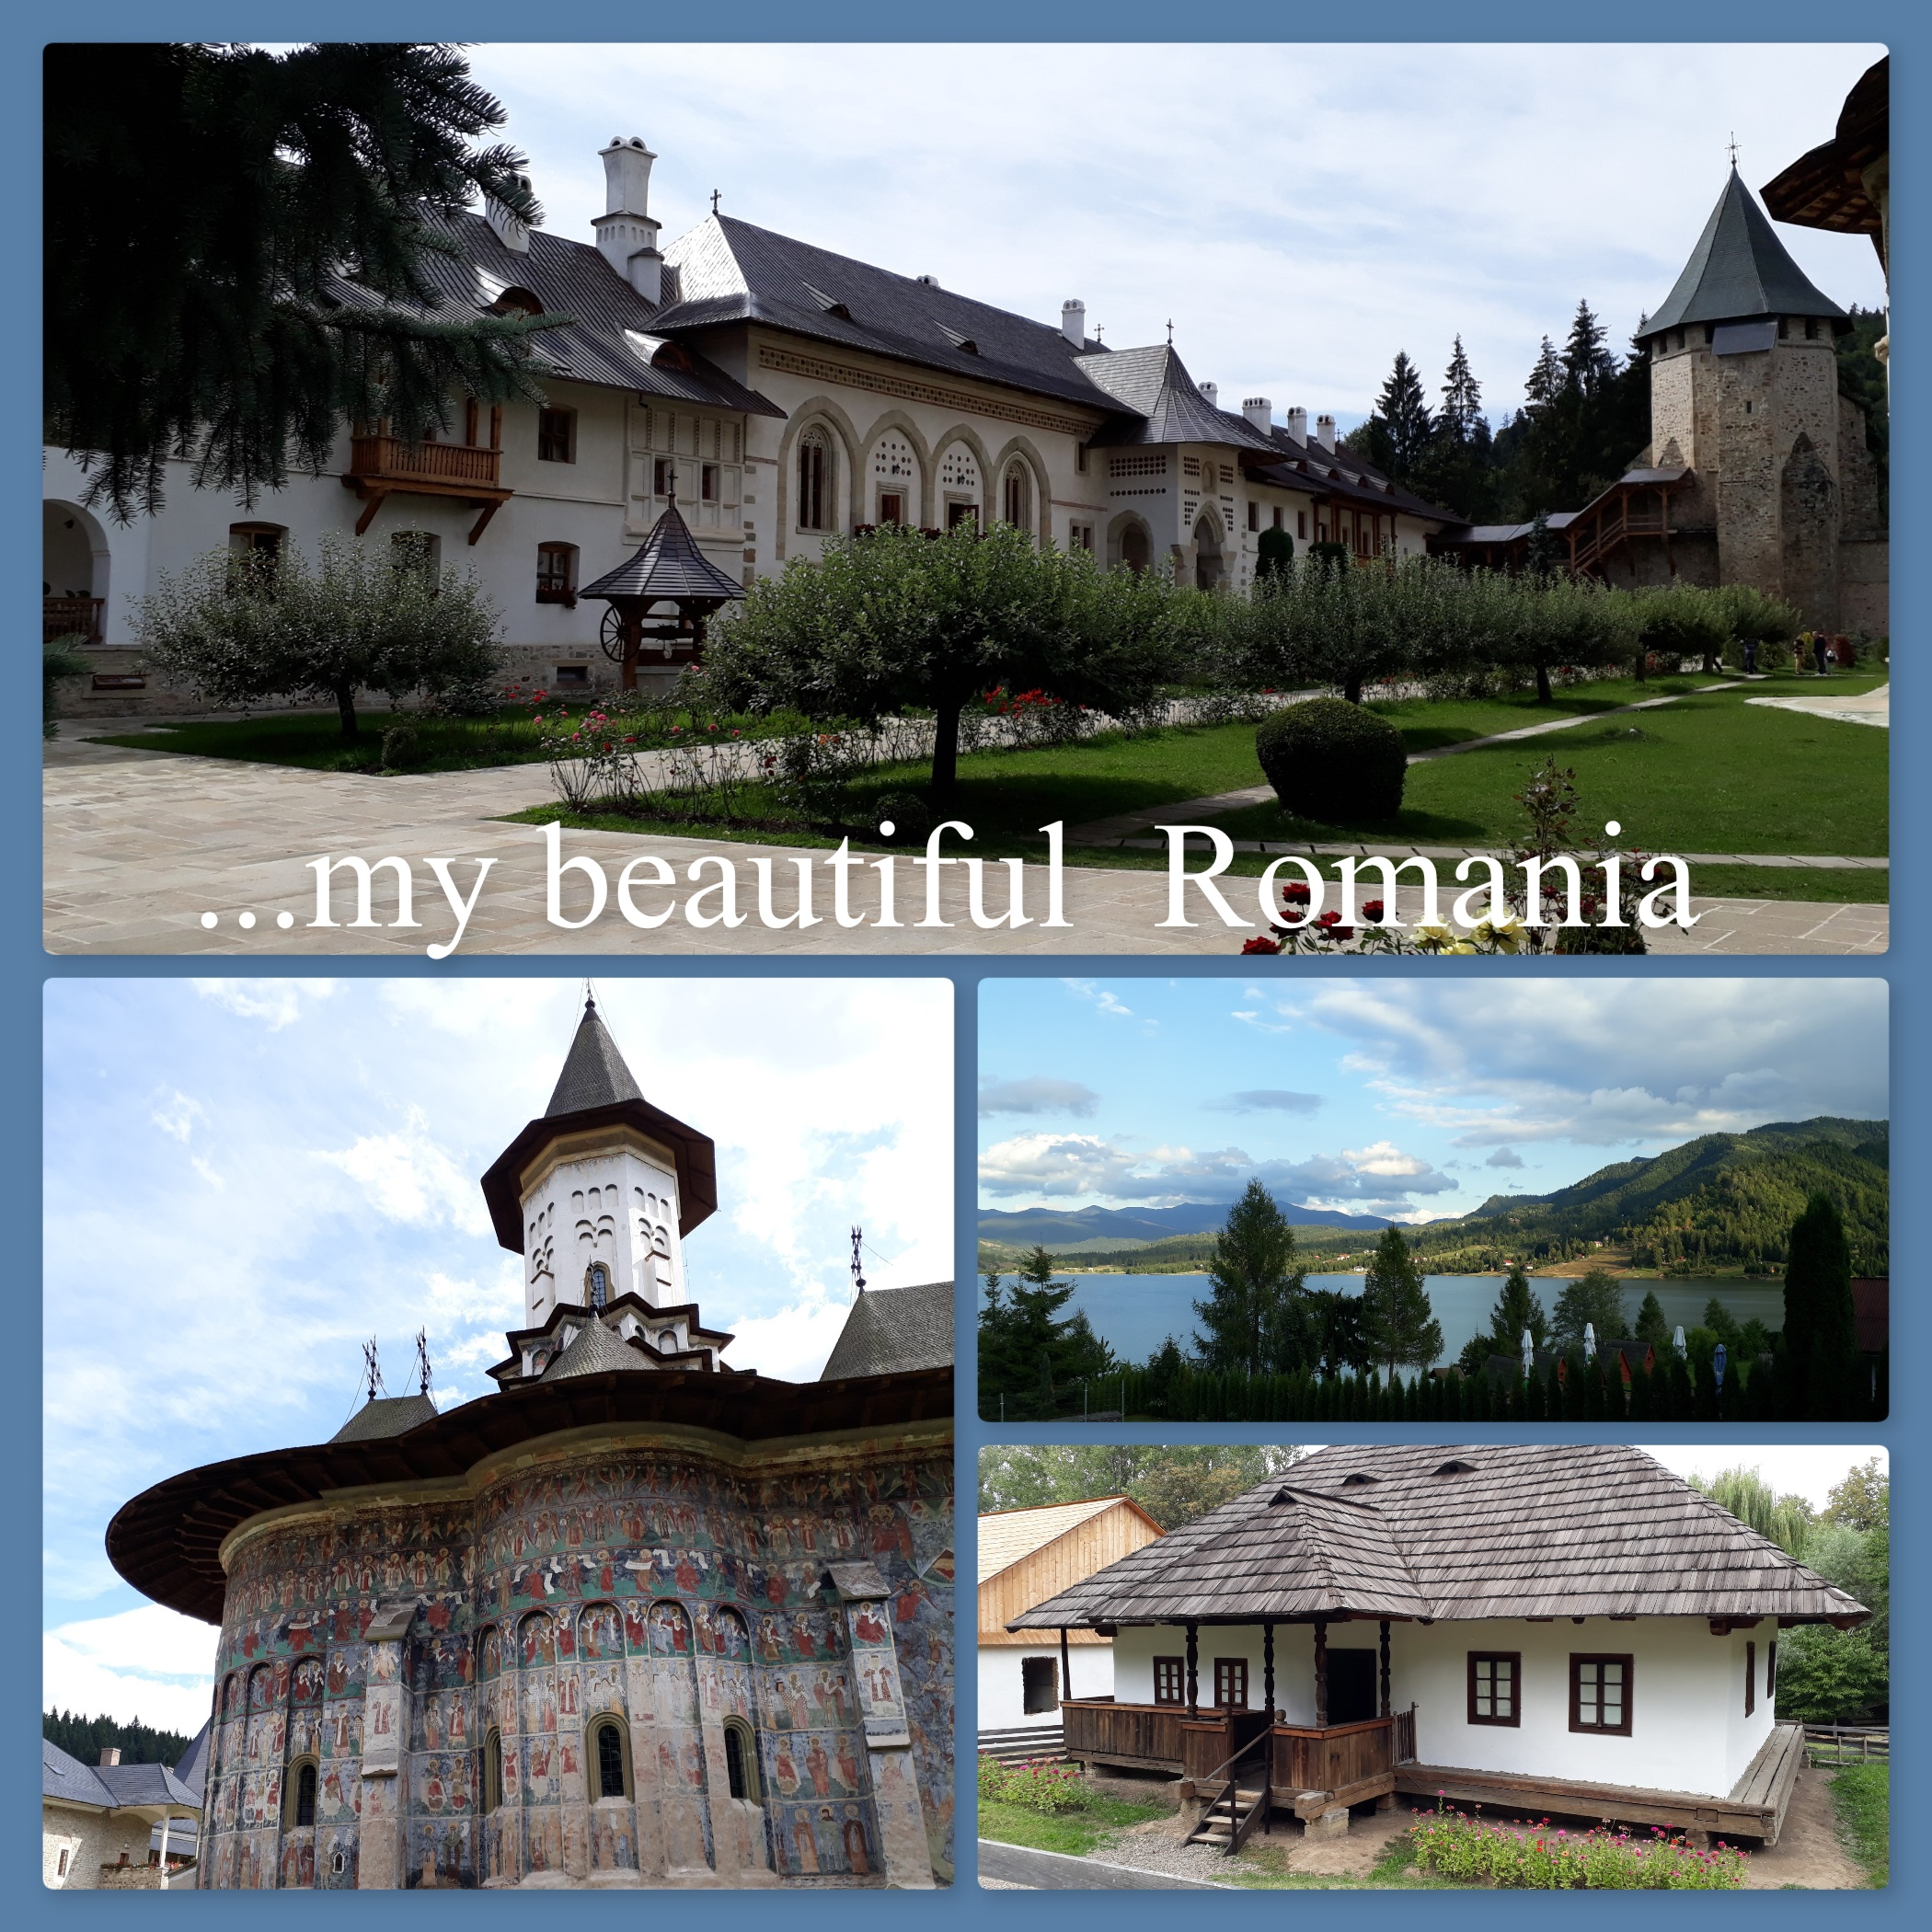 Maria's Photos of Romania